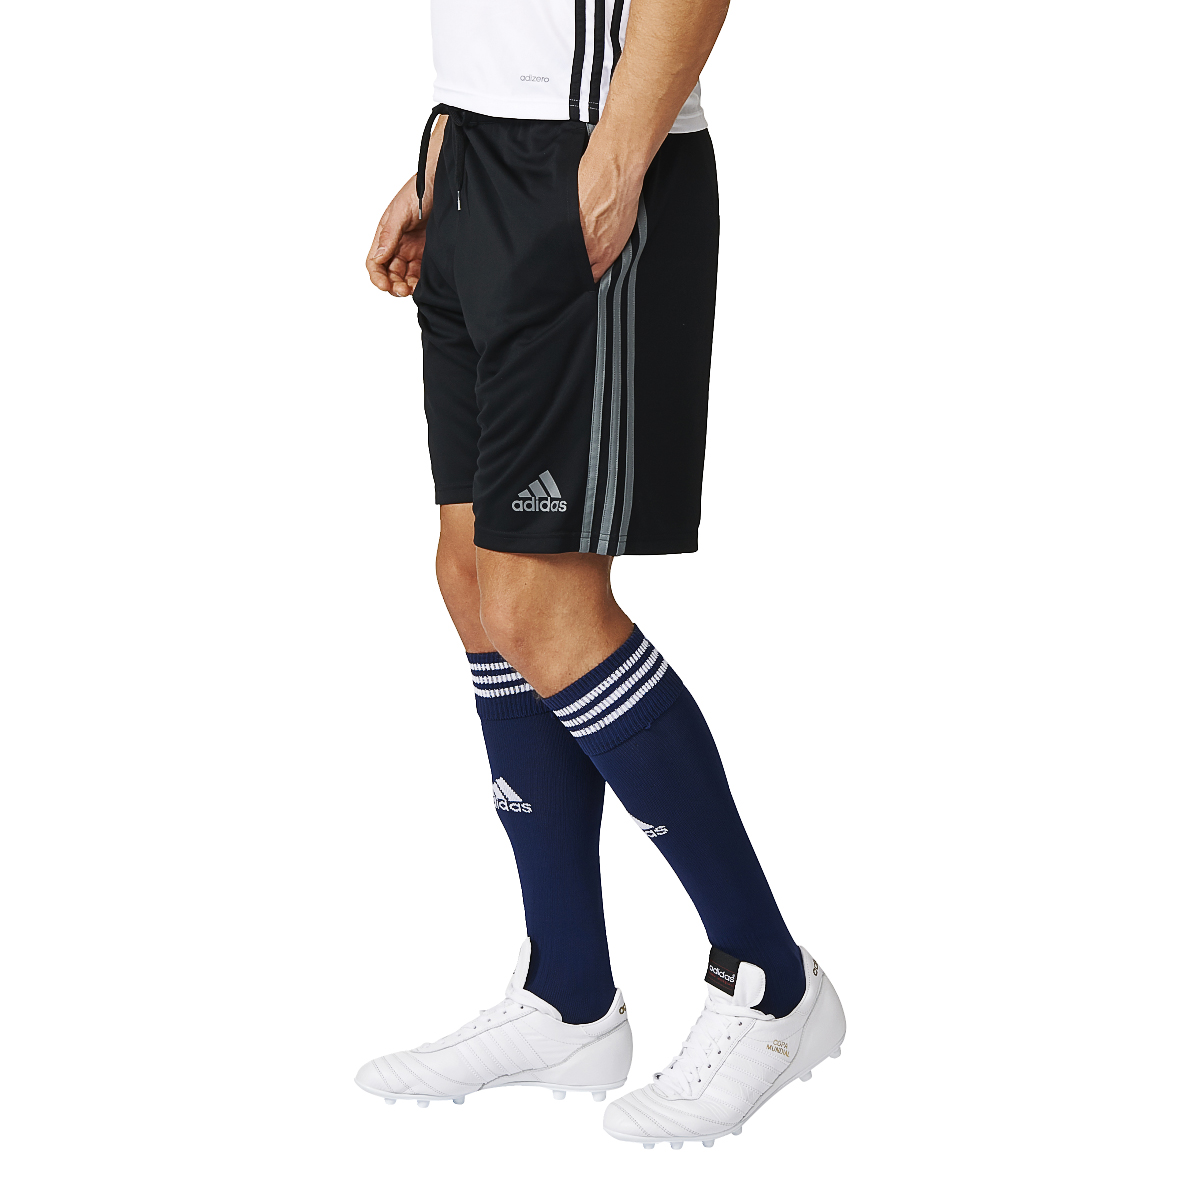 Adidas Condivo 16 Training Short